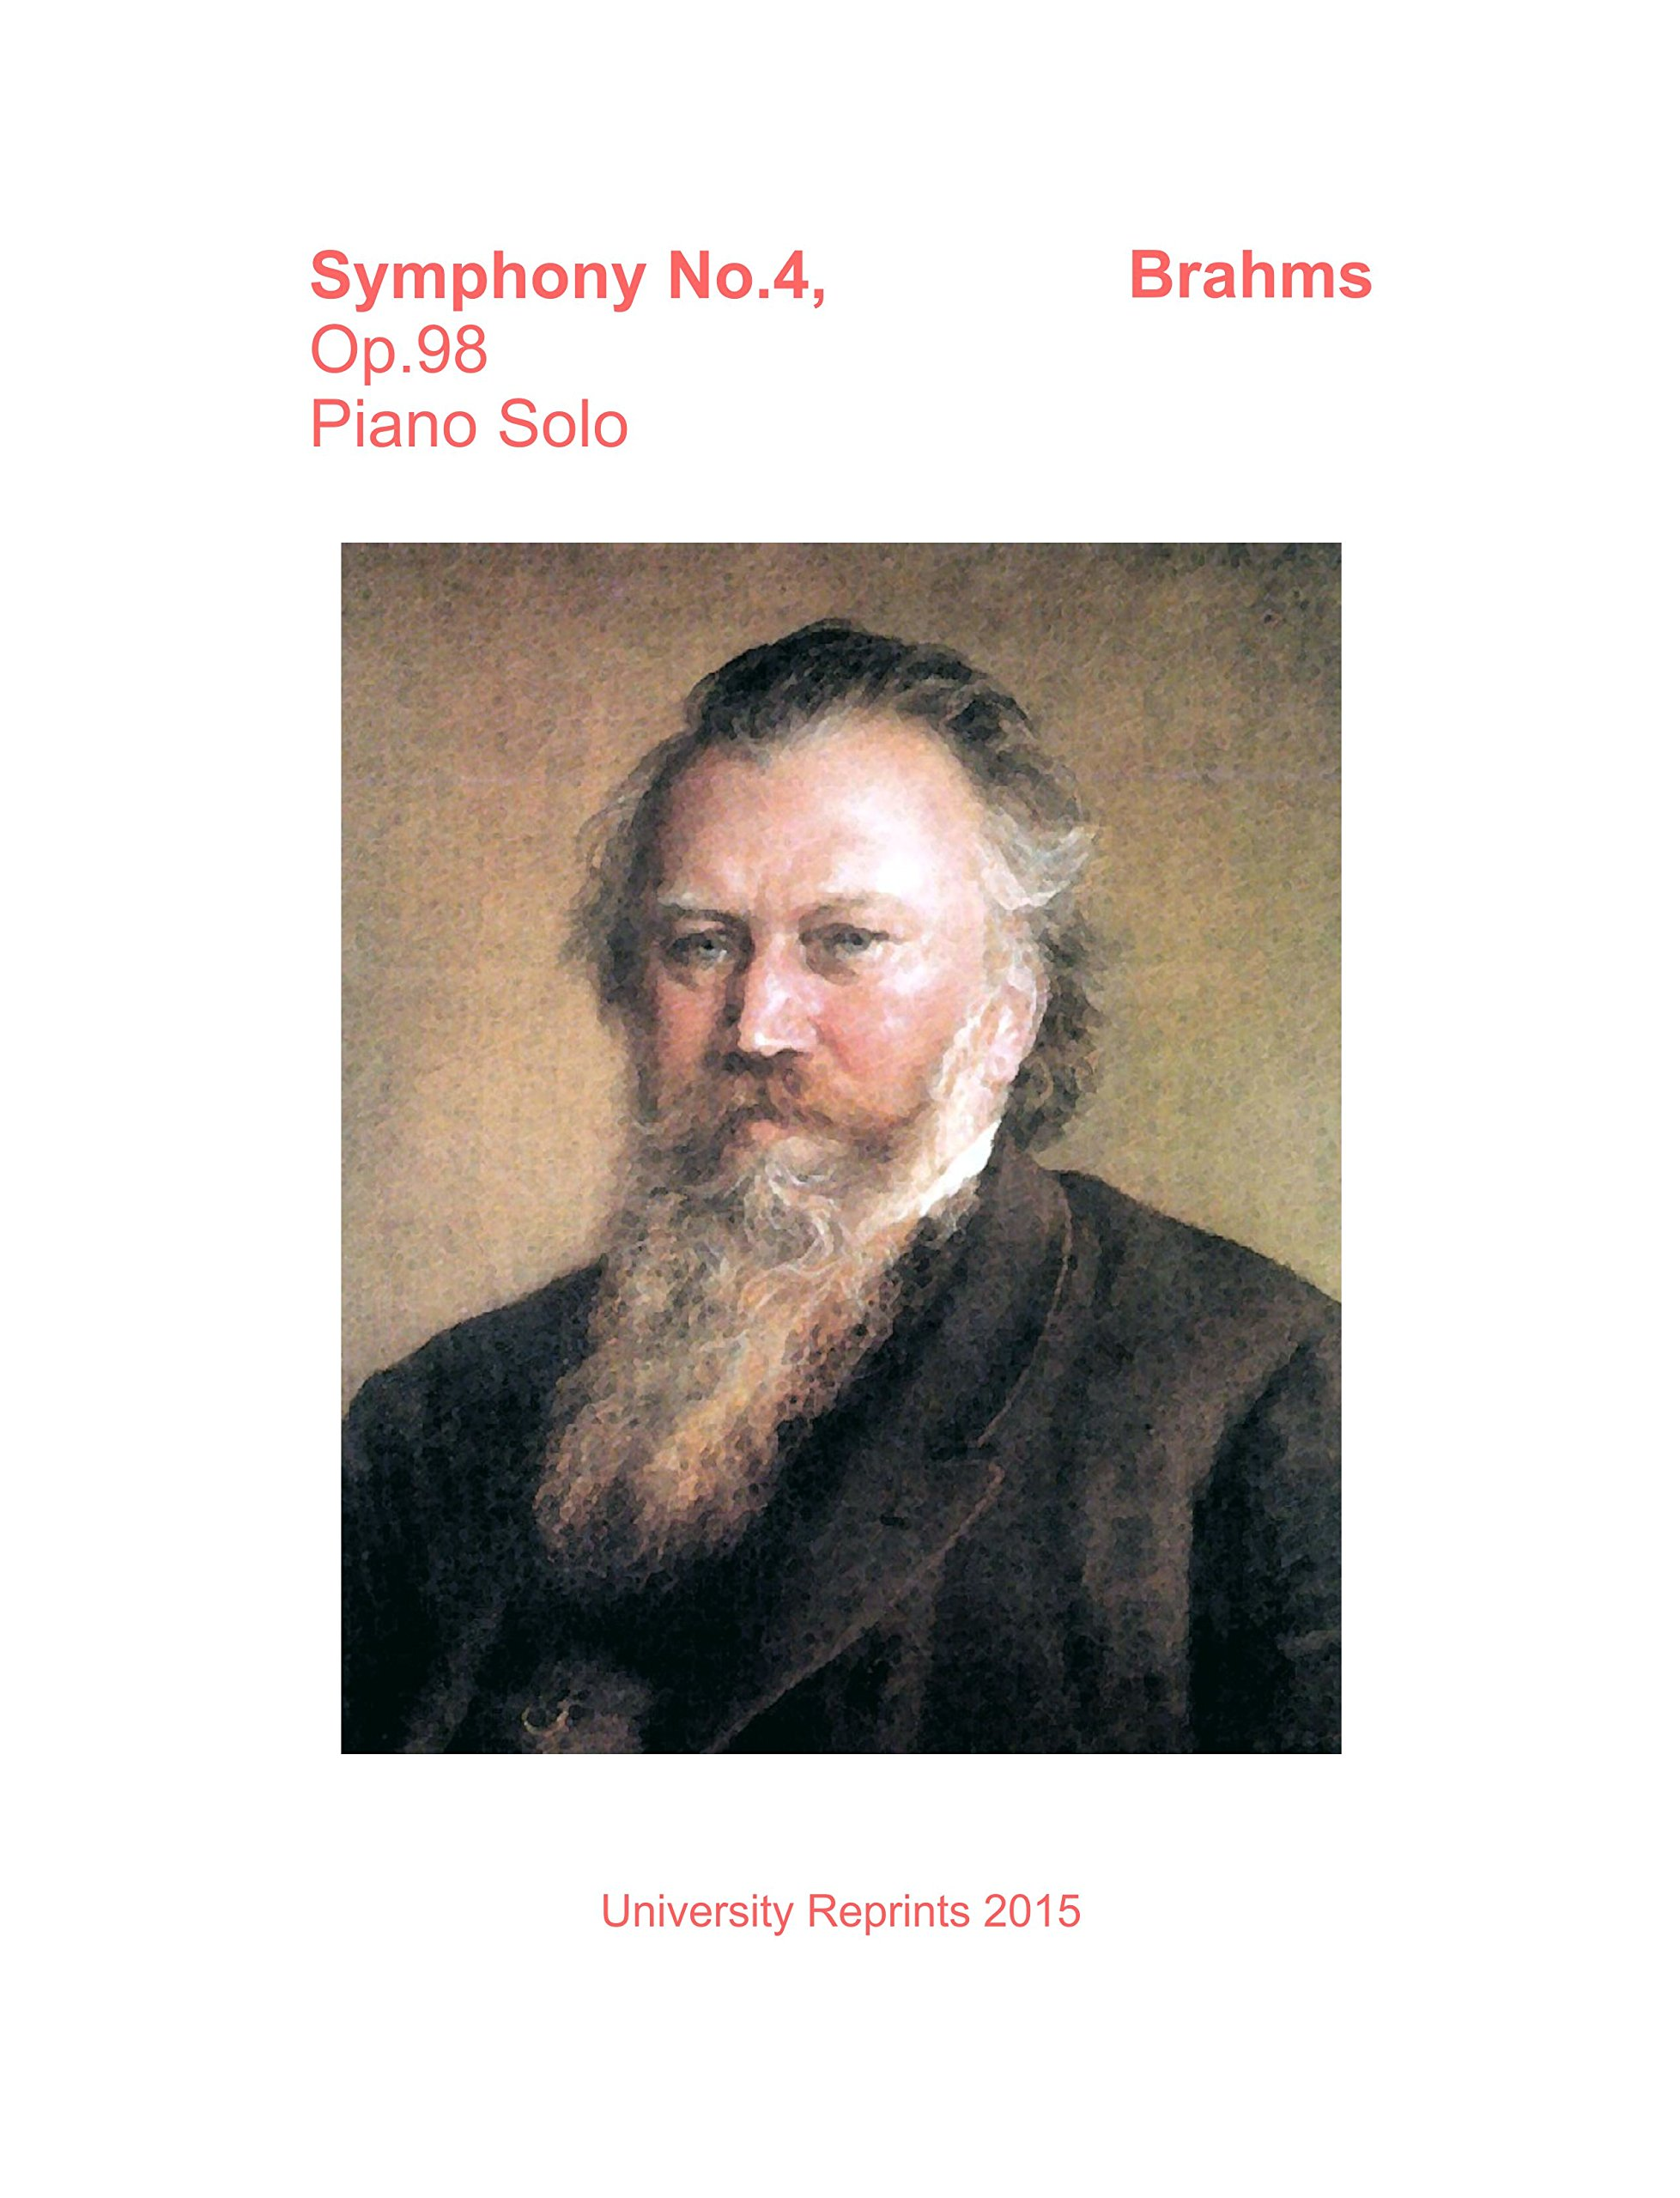 Download Symphony No.4, Op.98 by Johannes Brahms. Piano Solo. [Student Loose Leaf Facsimile Edition. Re-Imaged from Original for Greater Clarity. 2015] pdf epub